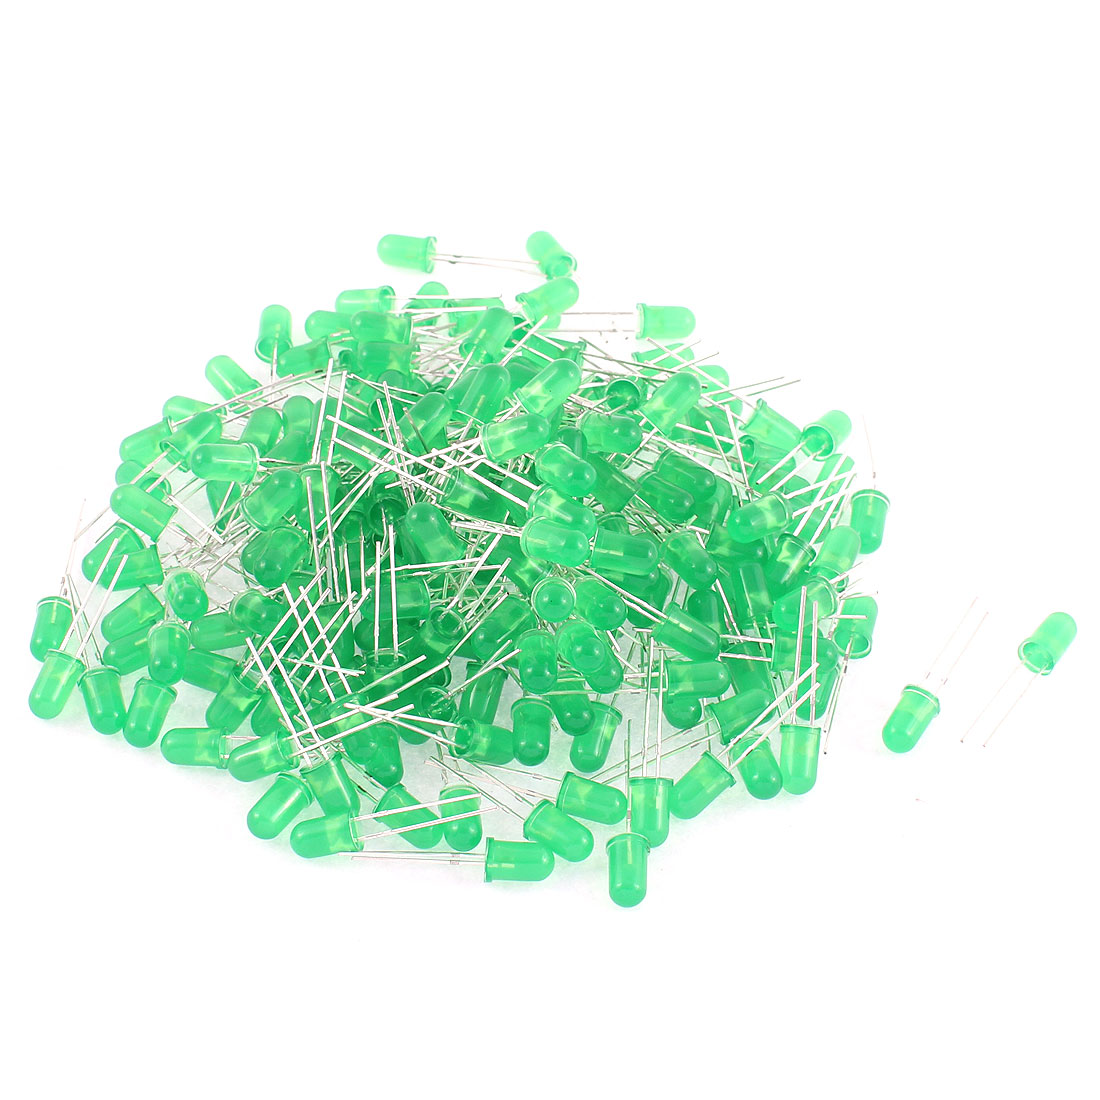 200pcs 5mm Diffused Green Round Top LED Light Emitting Diodes Bulbs